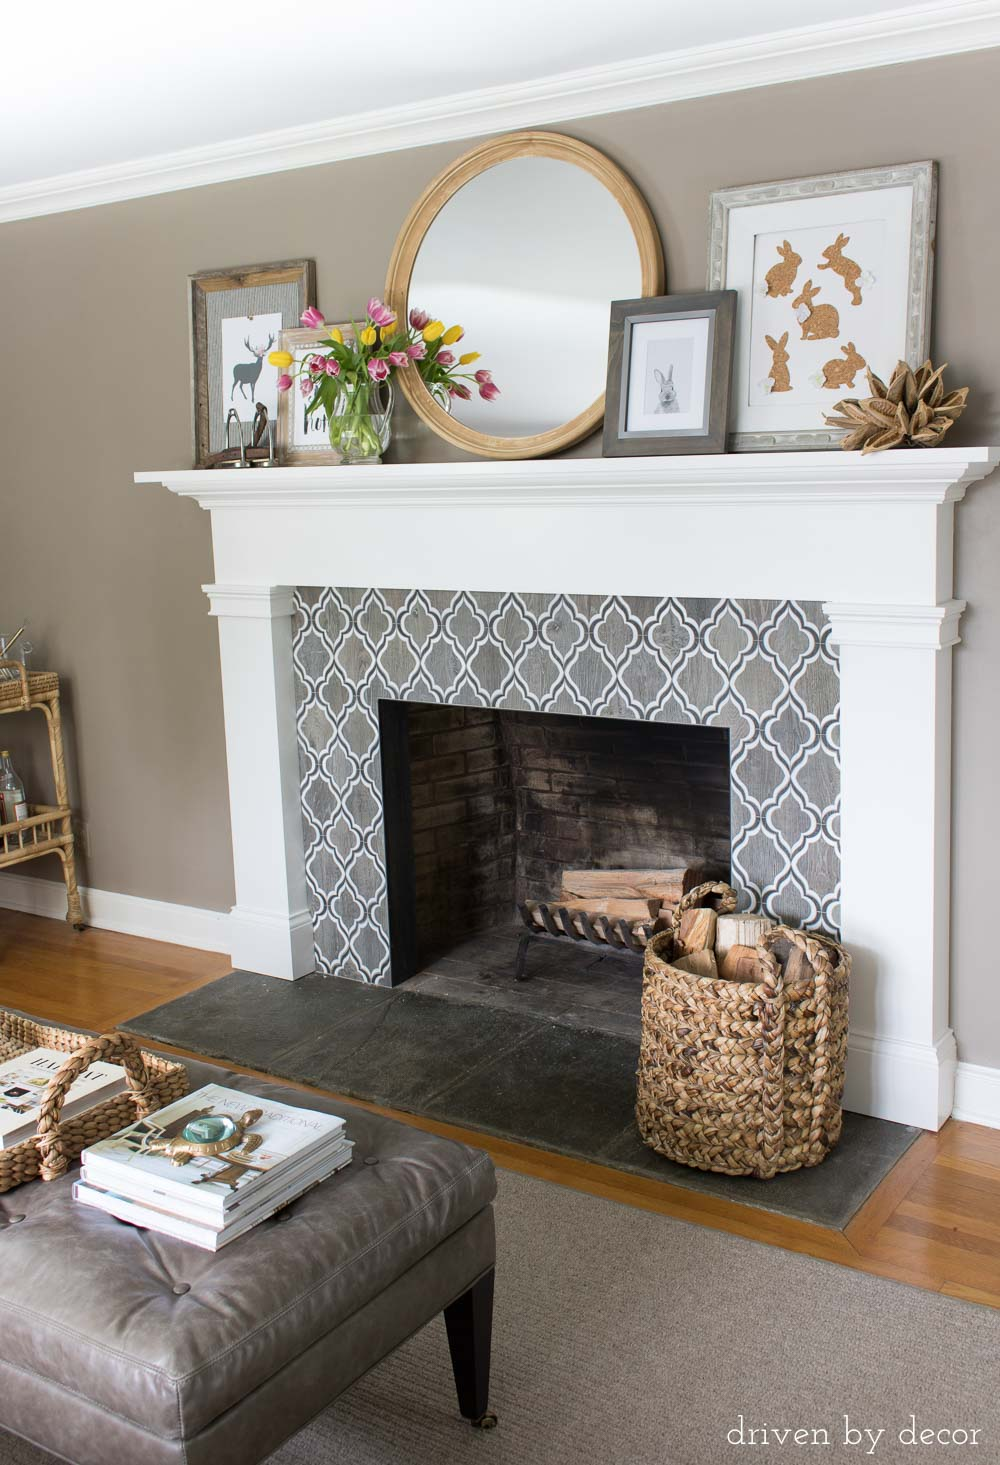 Love the patterned tile fireplace surround and layered mantel art!